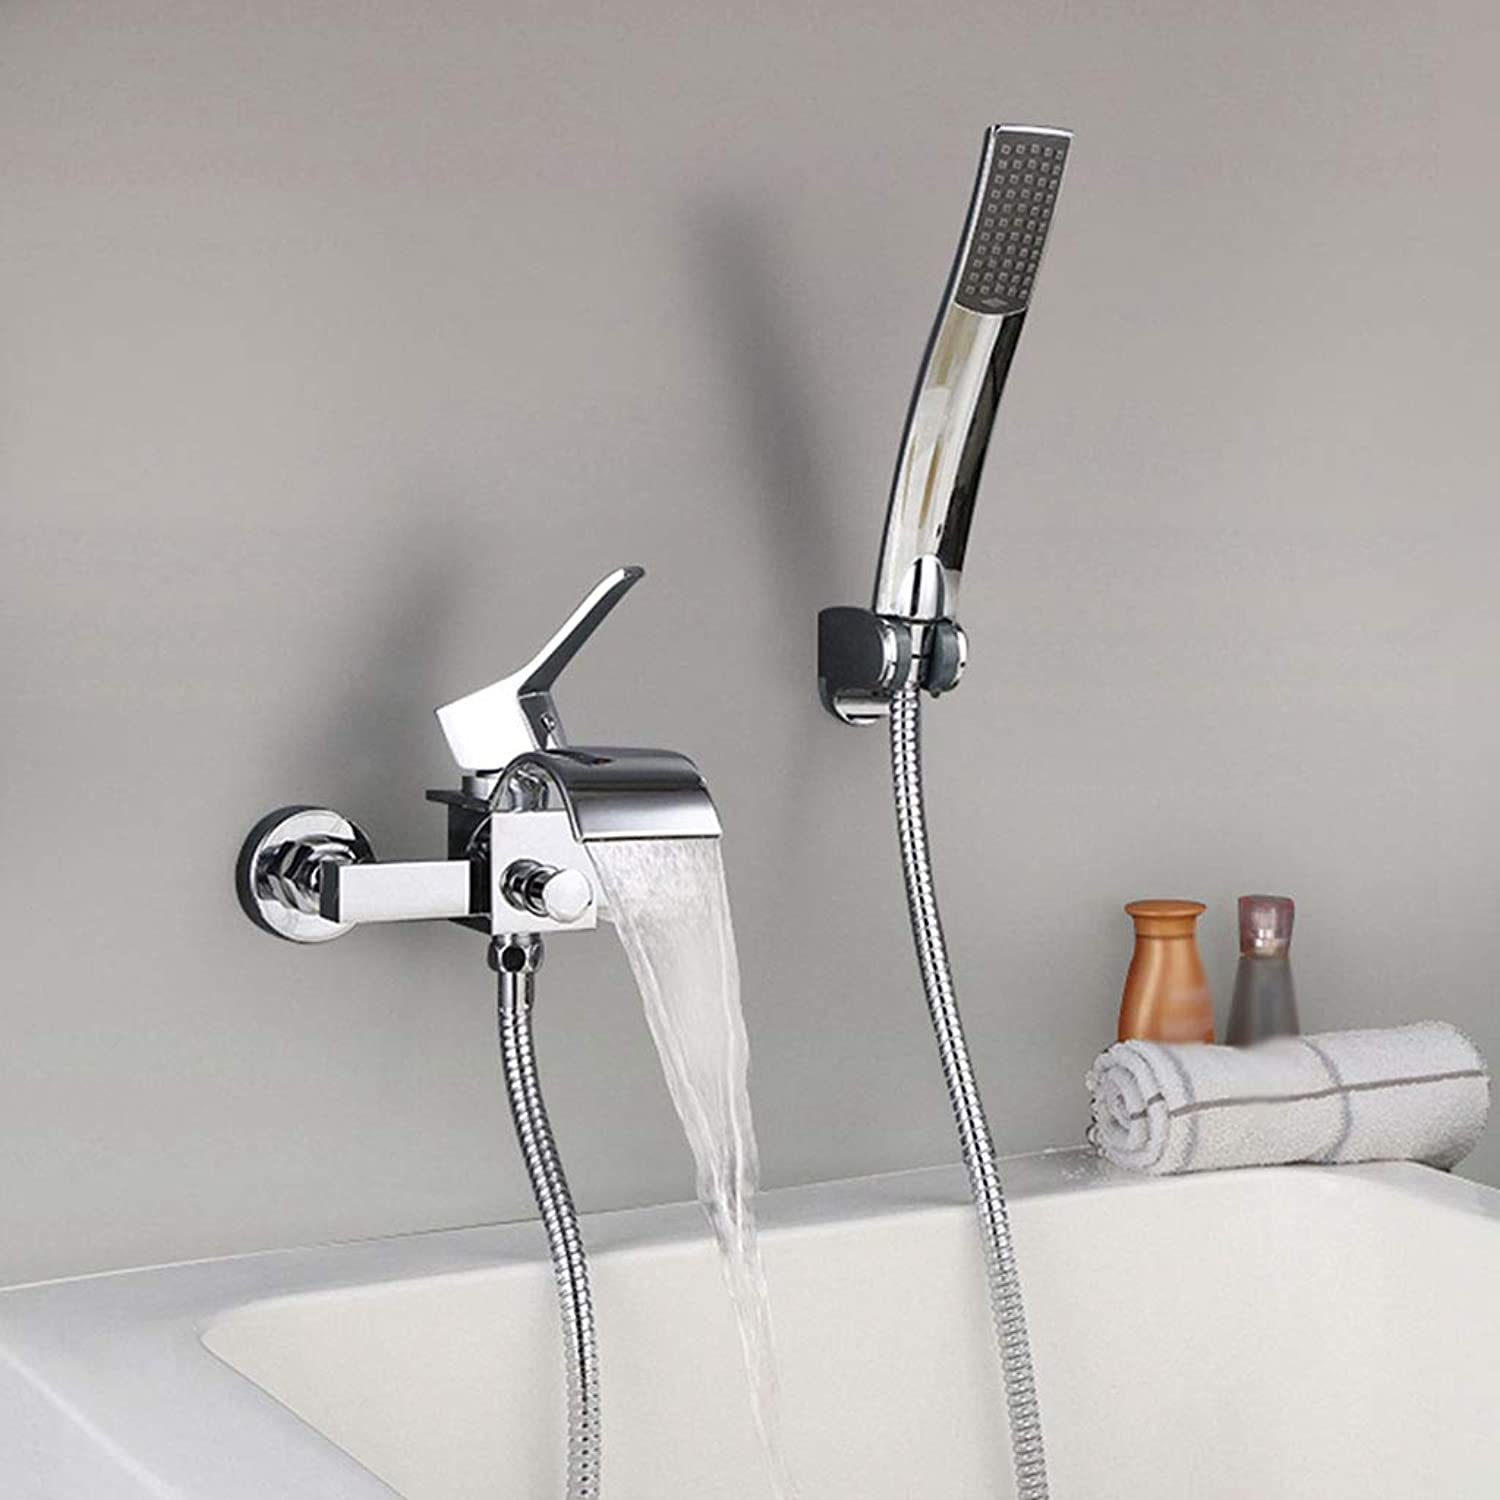 LXKY Faucet - In-wall concealed bathtub faucet, hot and cold water with shower faucet